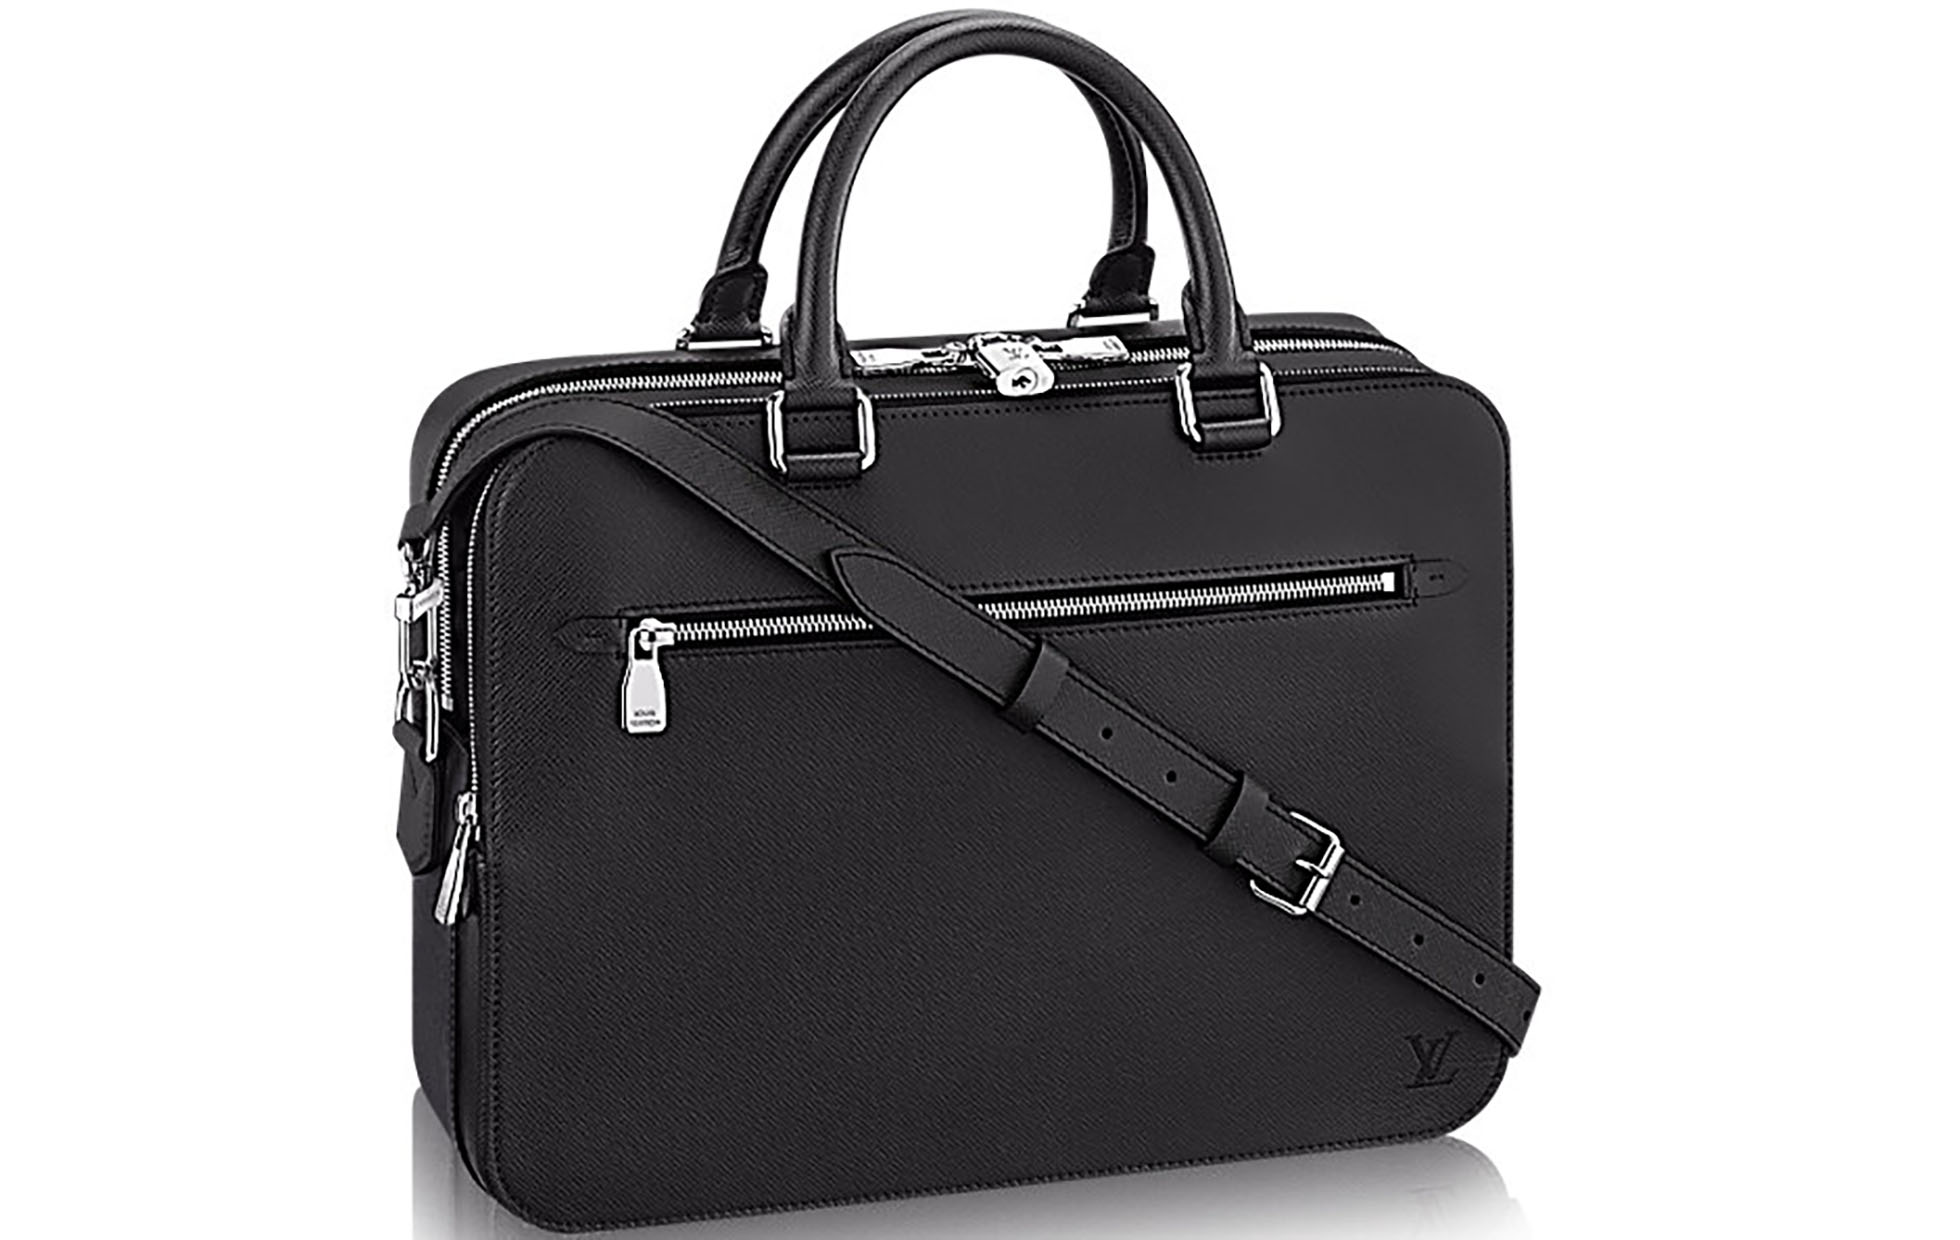 louis-vuitton-porte-documents-organizer-taiga-leather-men-s-bags-m33405_pm2_front-view